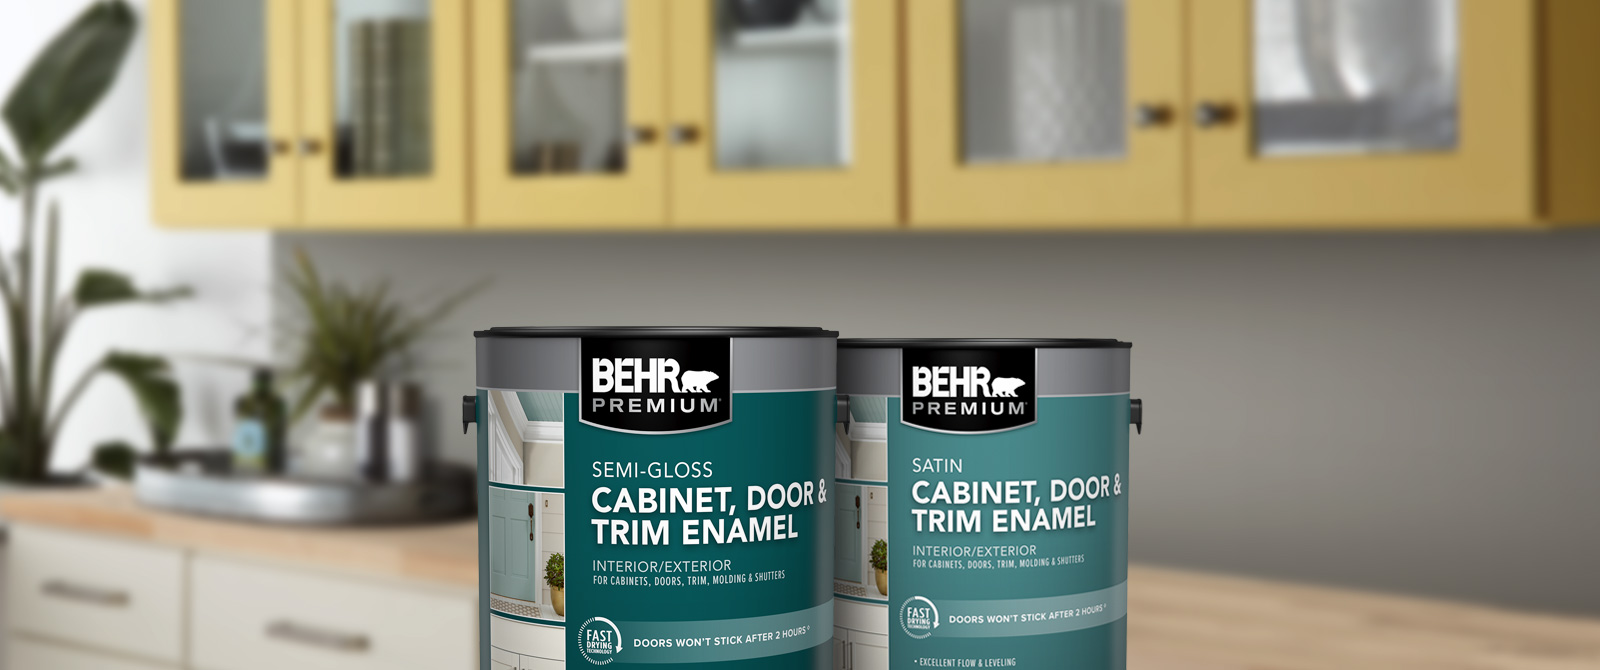 BEHR PREMIUM Cabinetry and Trim - Satin & Semi-gloss Paint